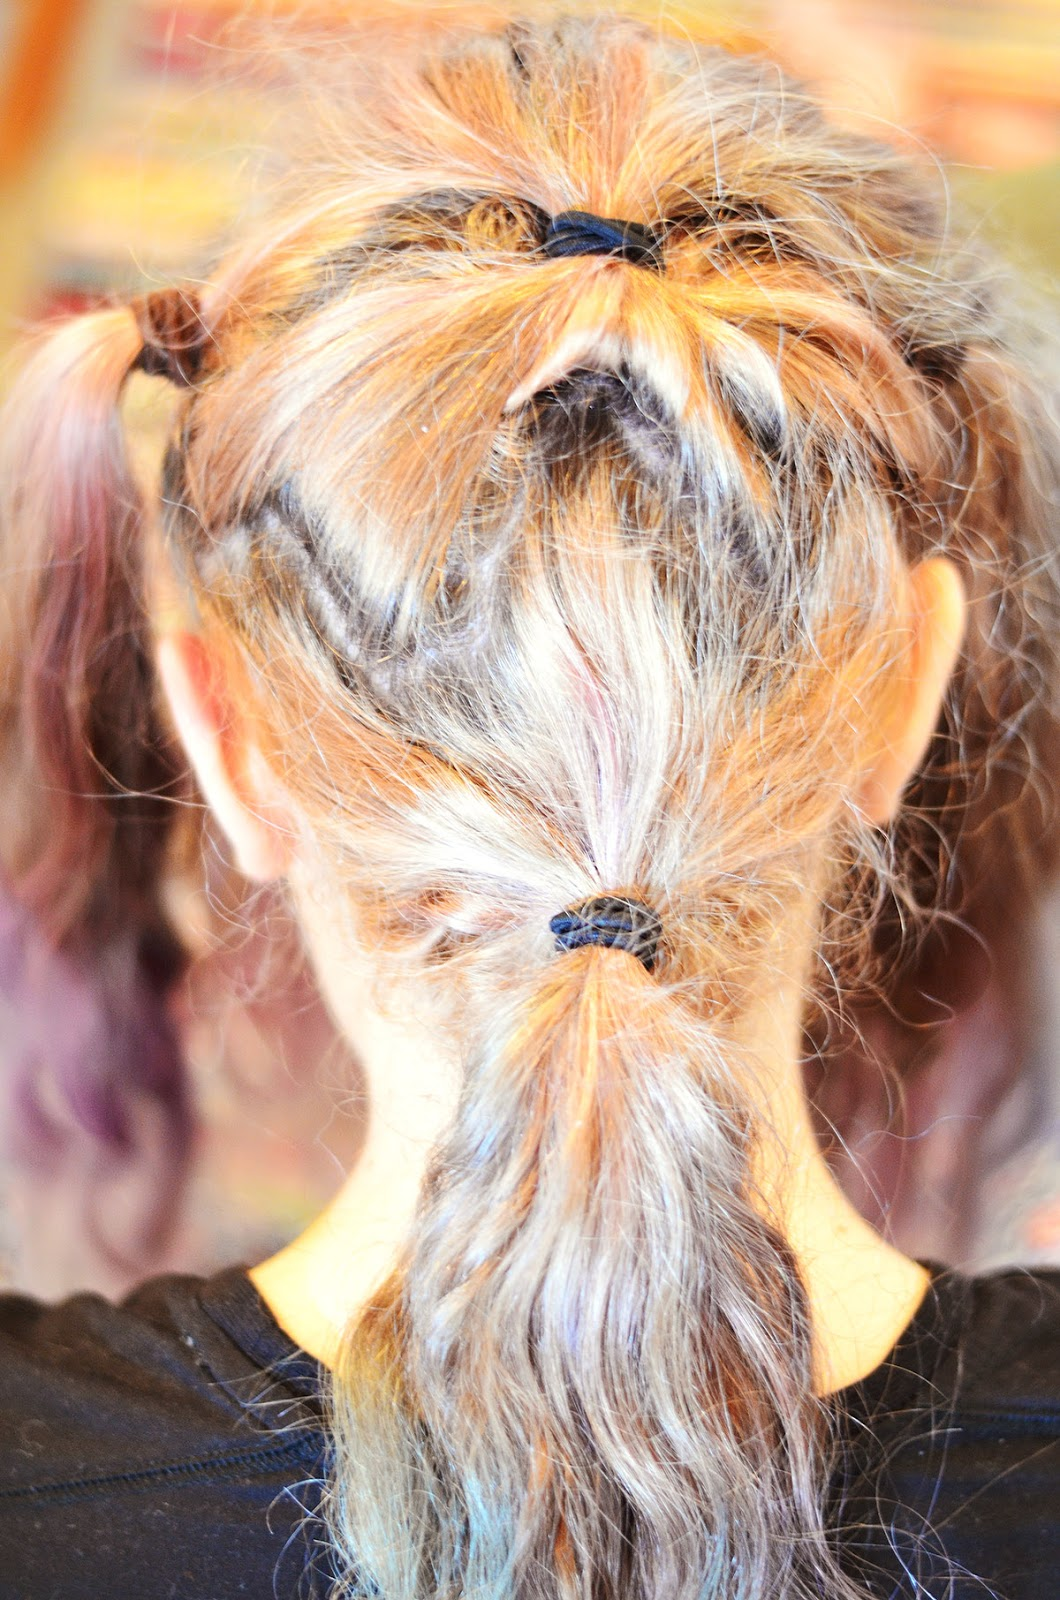 Zigzag hair sectioning